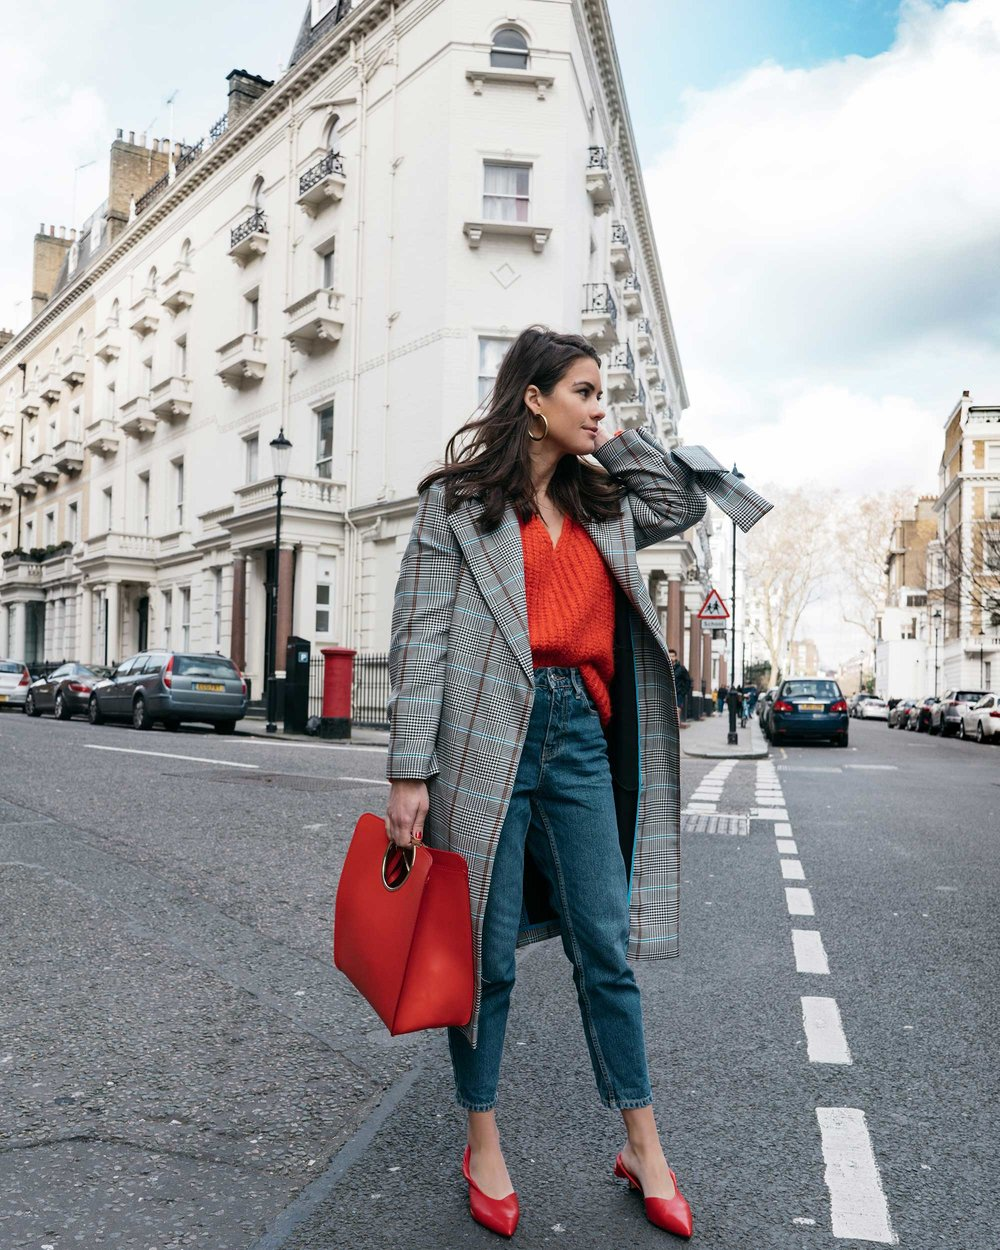 Lightweight-Check-Coat,-Salvatore-Ferragamo-Red-Leather-Tote,--Mom-jeans,-London-Fall-Outfit-Red-Accessories.jpg